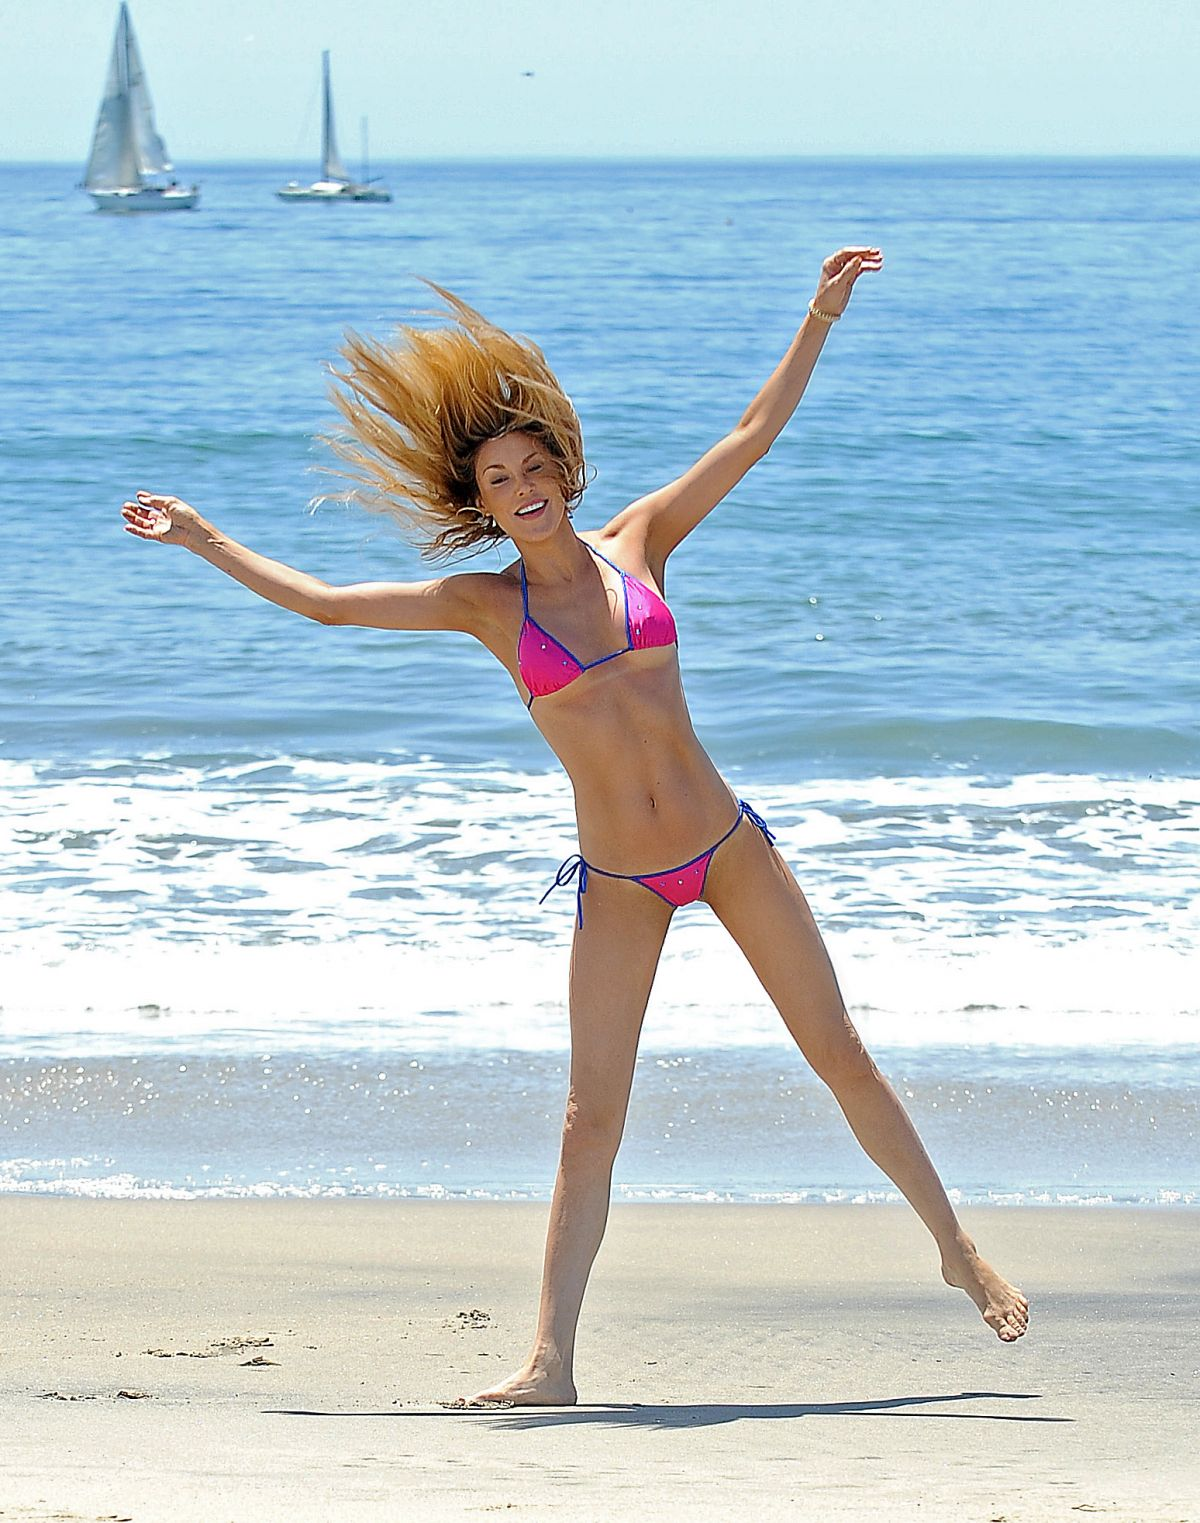 brandi-glanville-in-bikini-at-a-beach-in-los-angeles_16.jpg - 266.67 KB